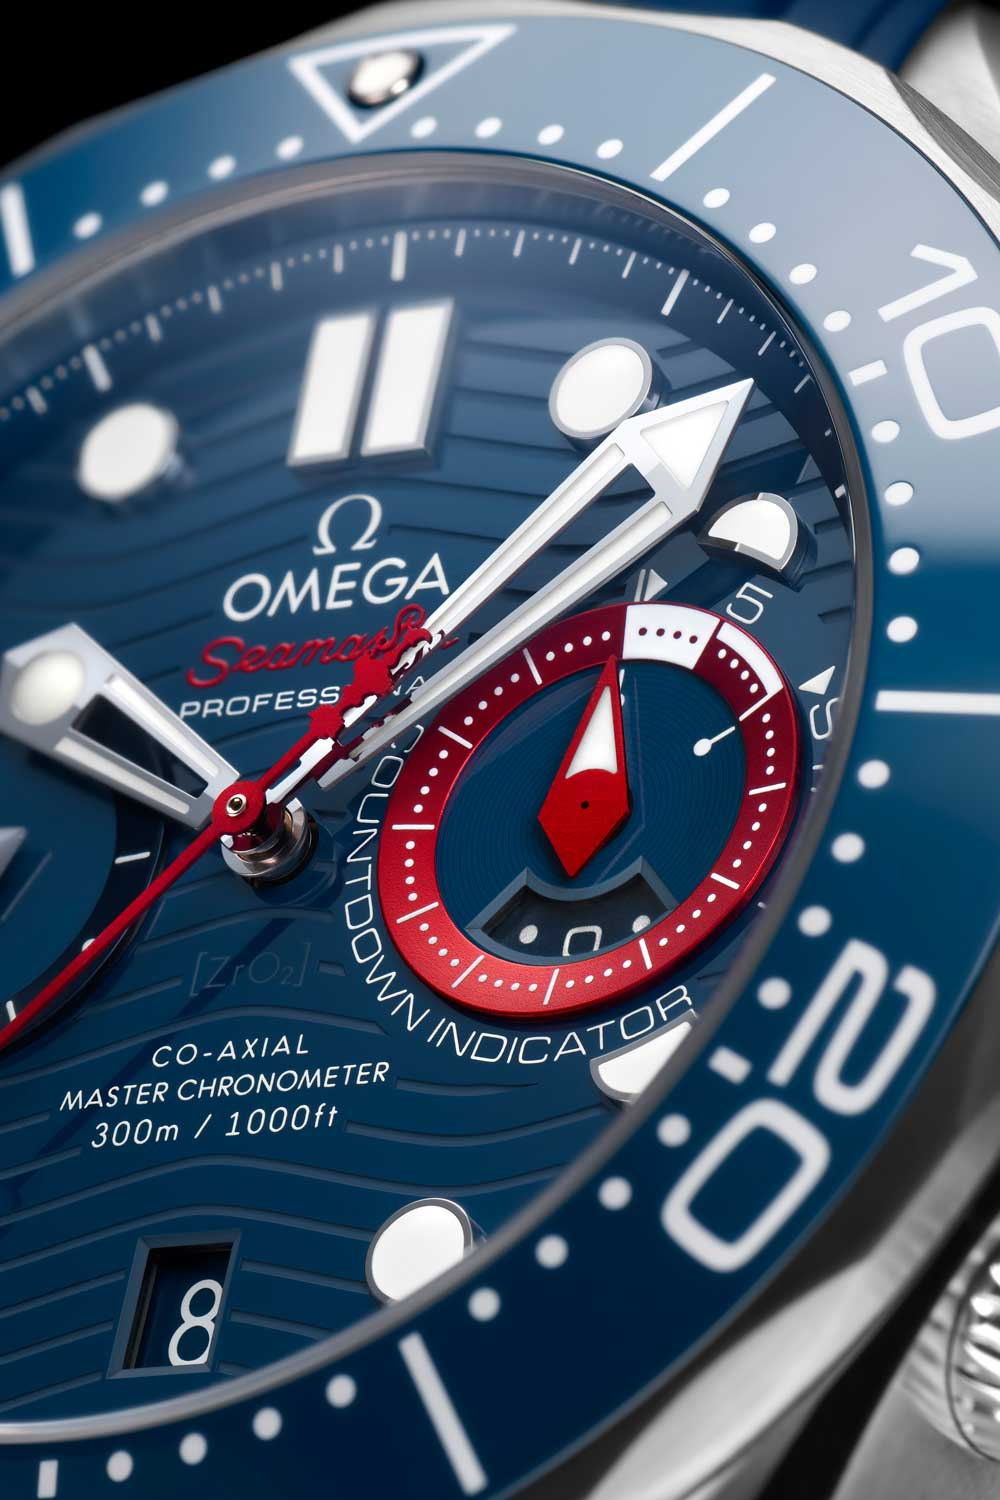 The watch highlights a strong sense of the America's Cup race livery of red, white and blue with bold, red accents on the dial.